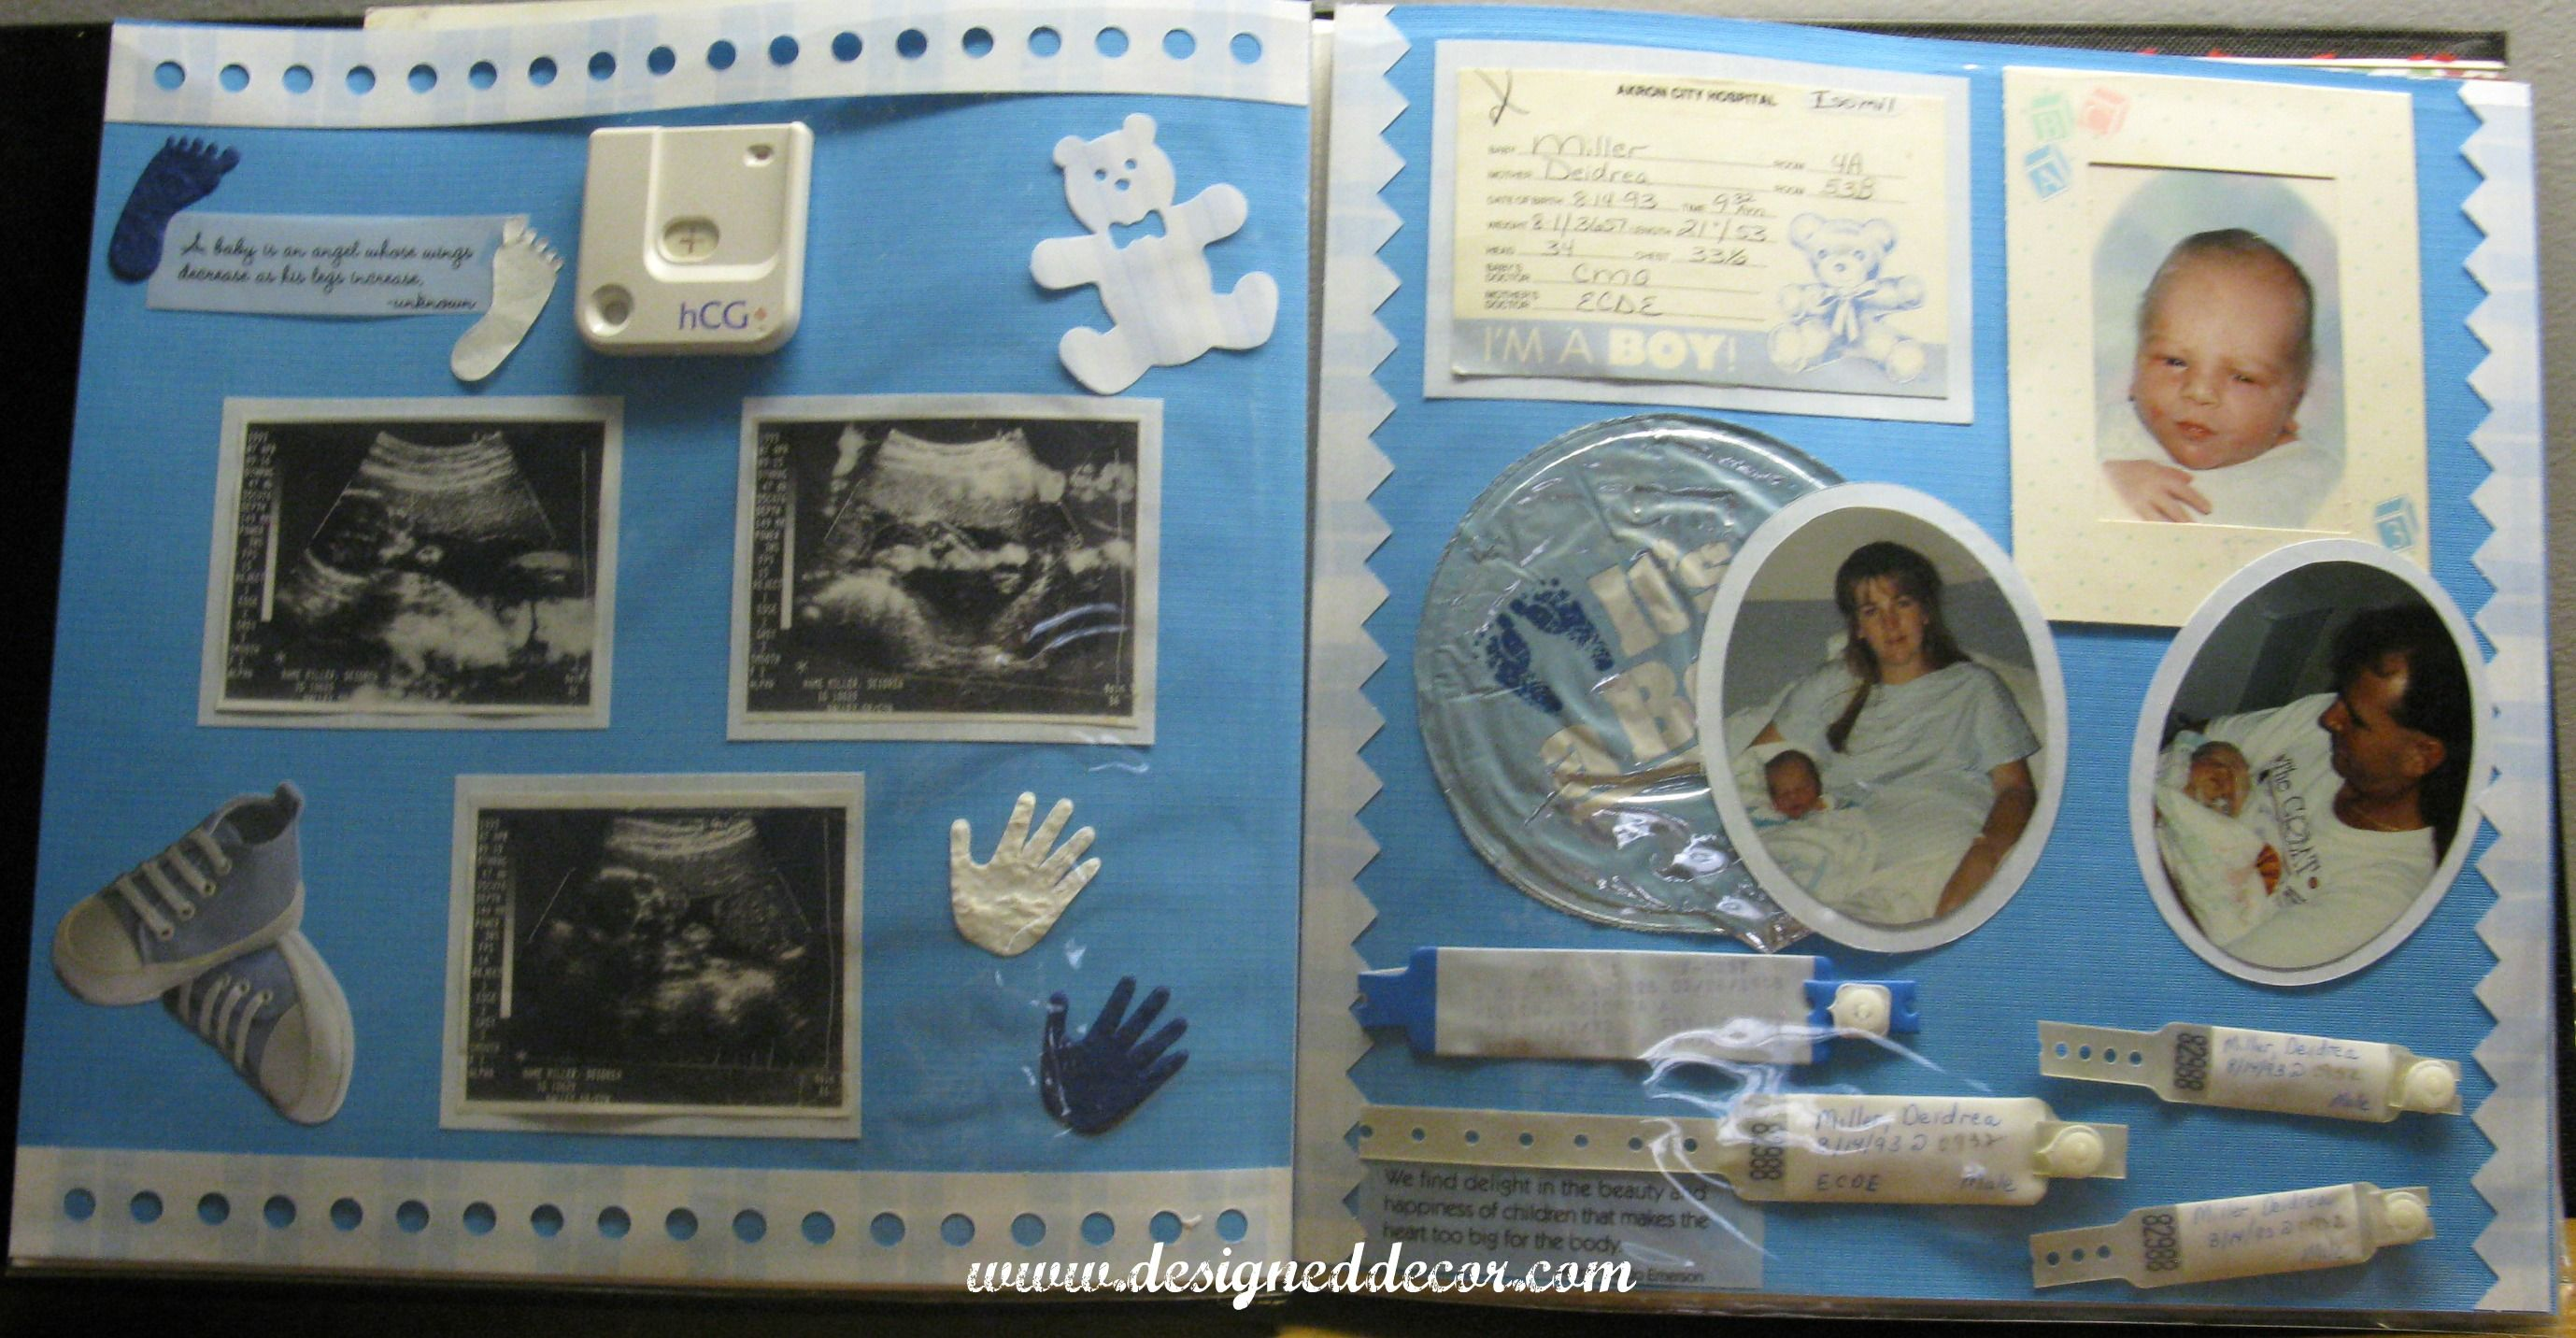 Scrapbook ideas and quotes - Scrapbooking Ideas